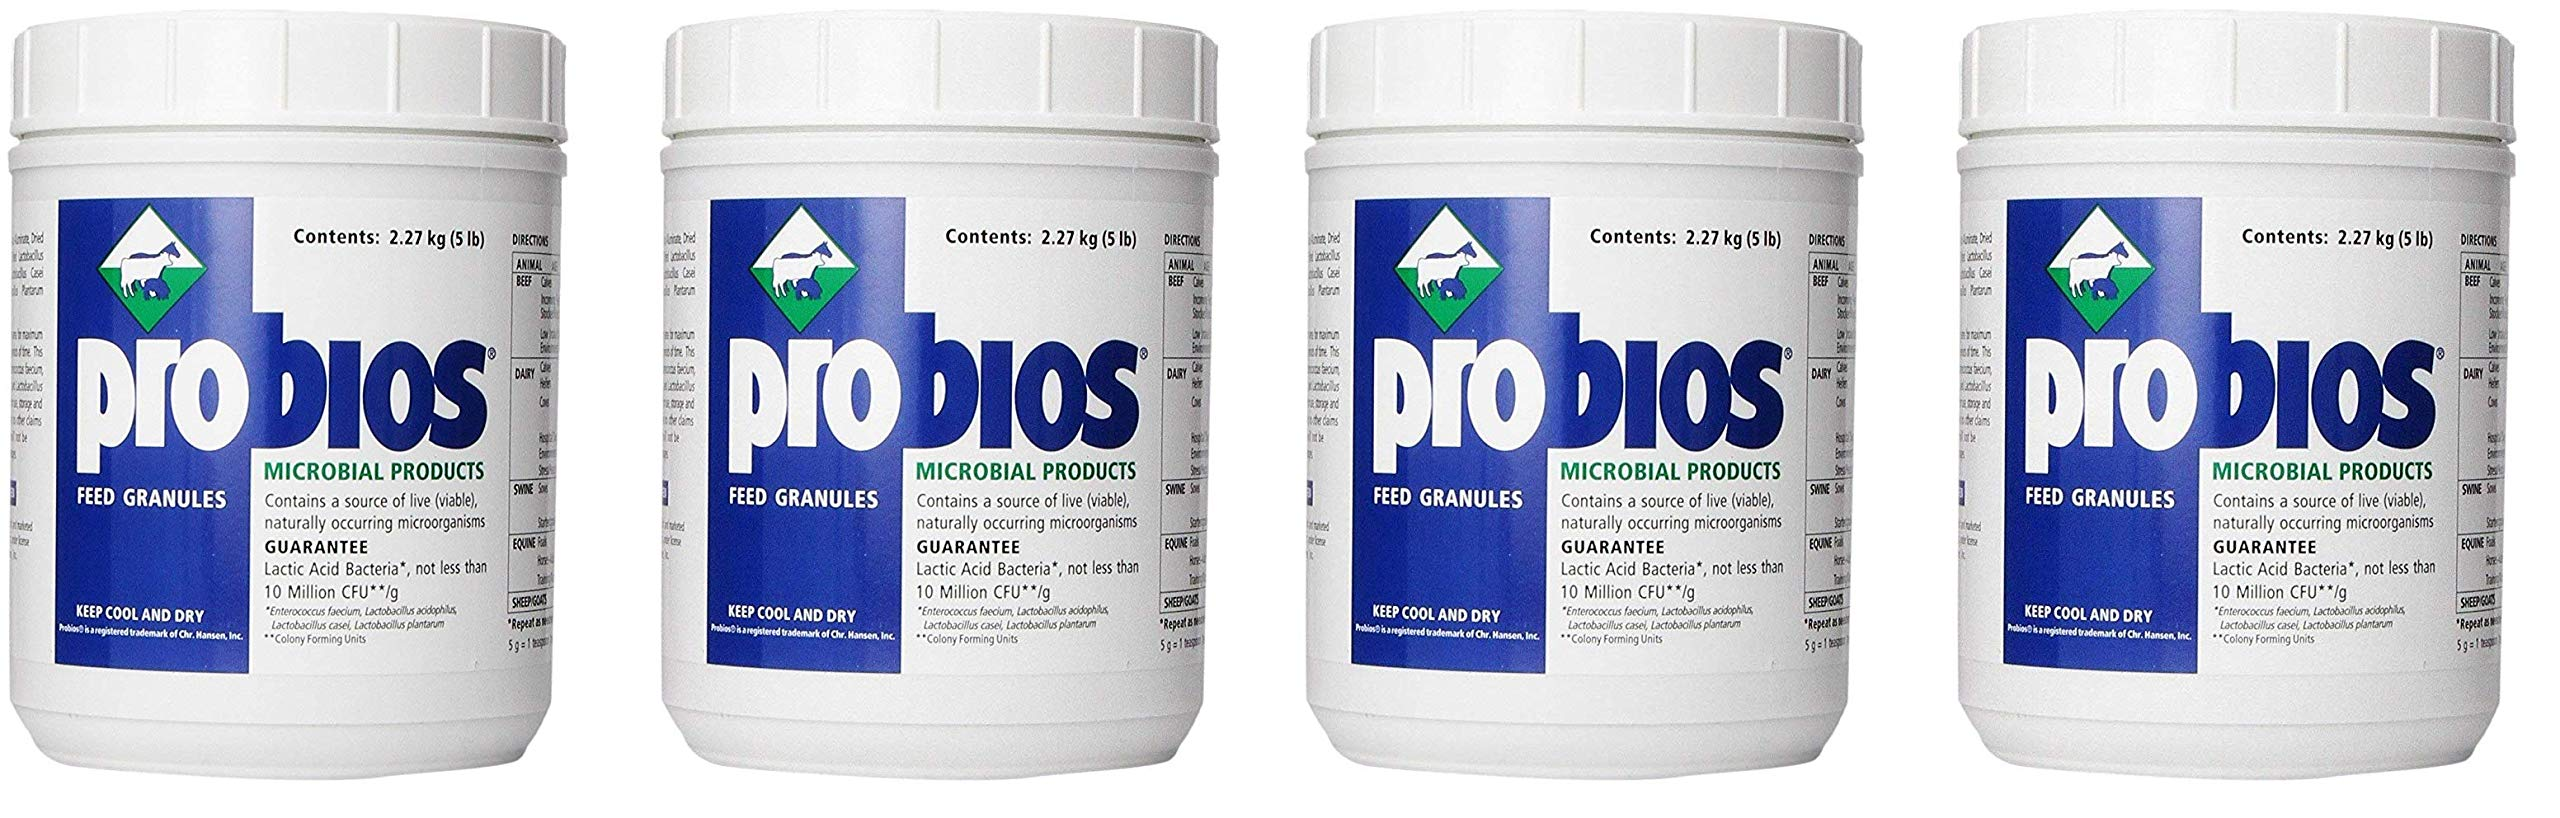 Probios VETS Plus Feed Granule for Horses, 5-Pound (4-(Pack))